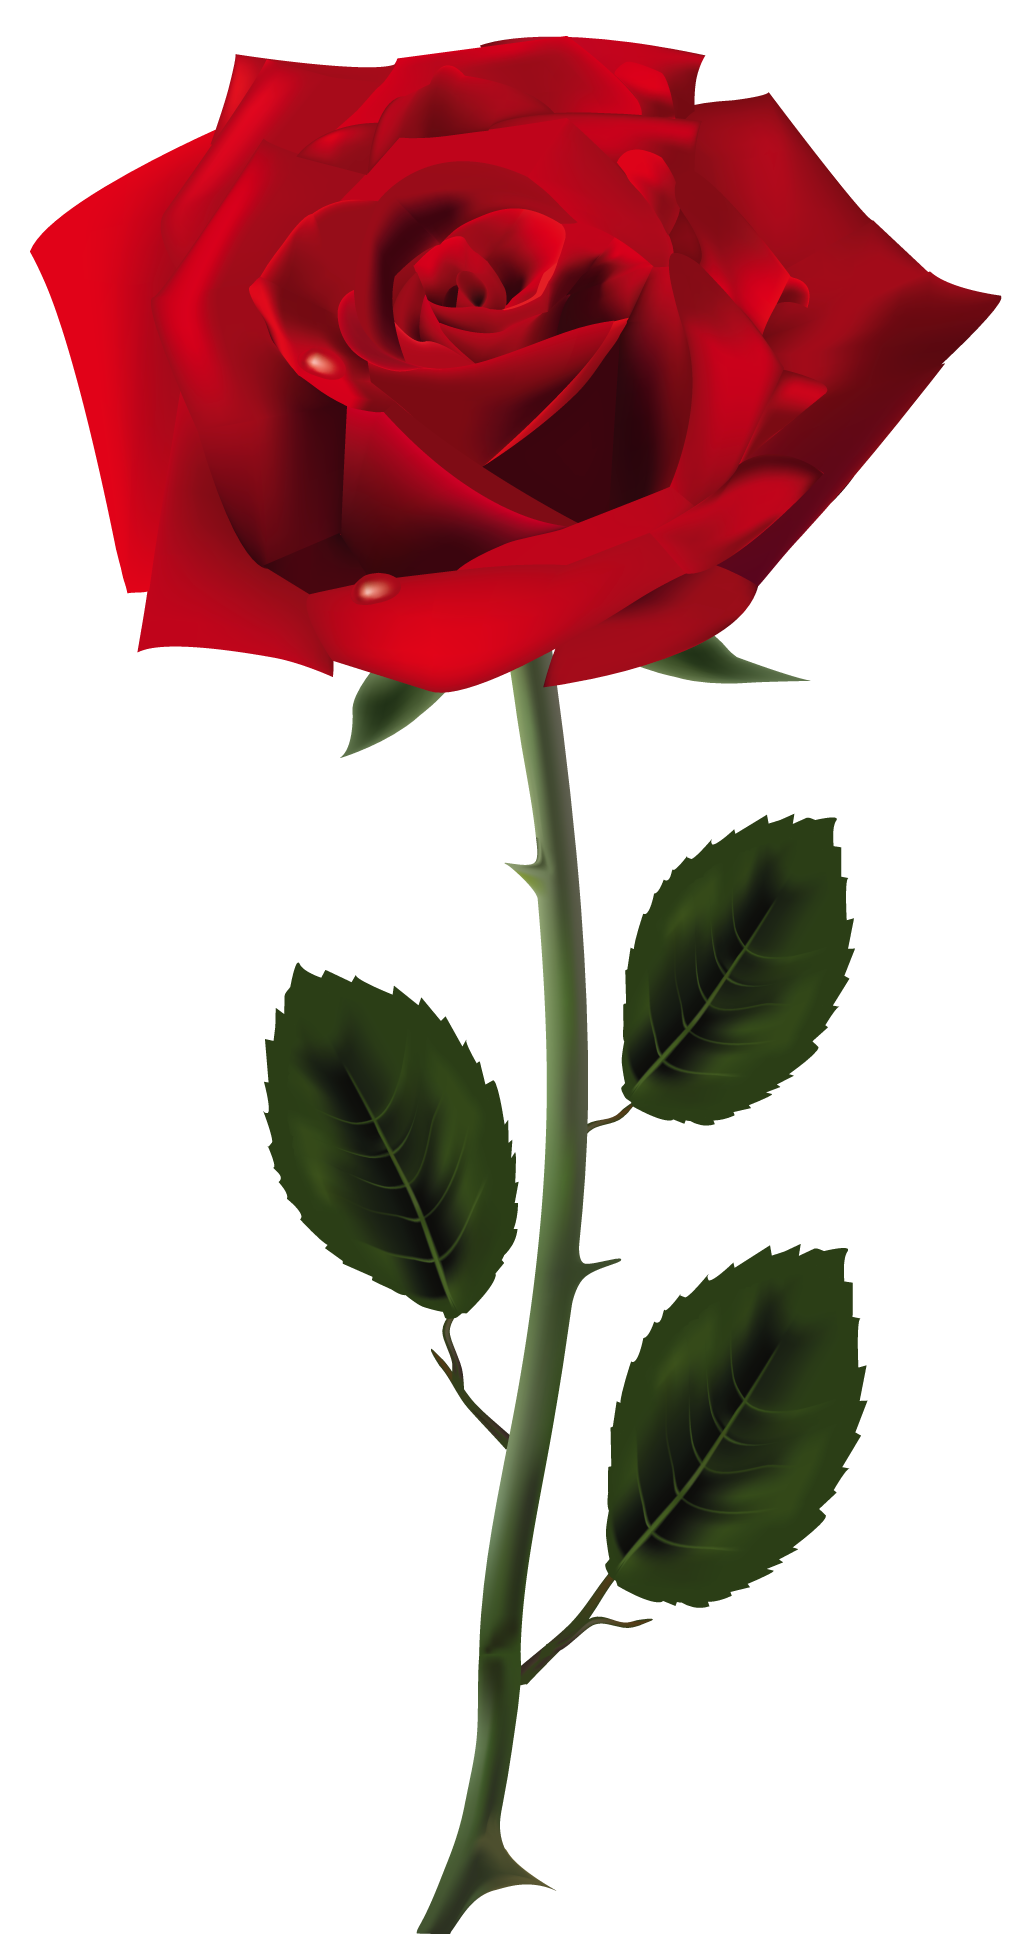 Red Rose PNG Art Picture | ~Colors: Shades of Red~ | Pinterest ... for Transparent Png Images Roses  51ane